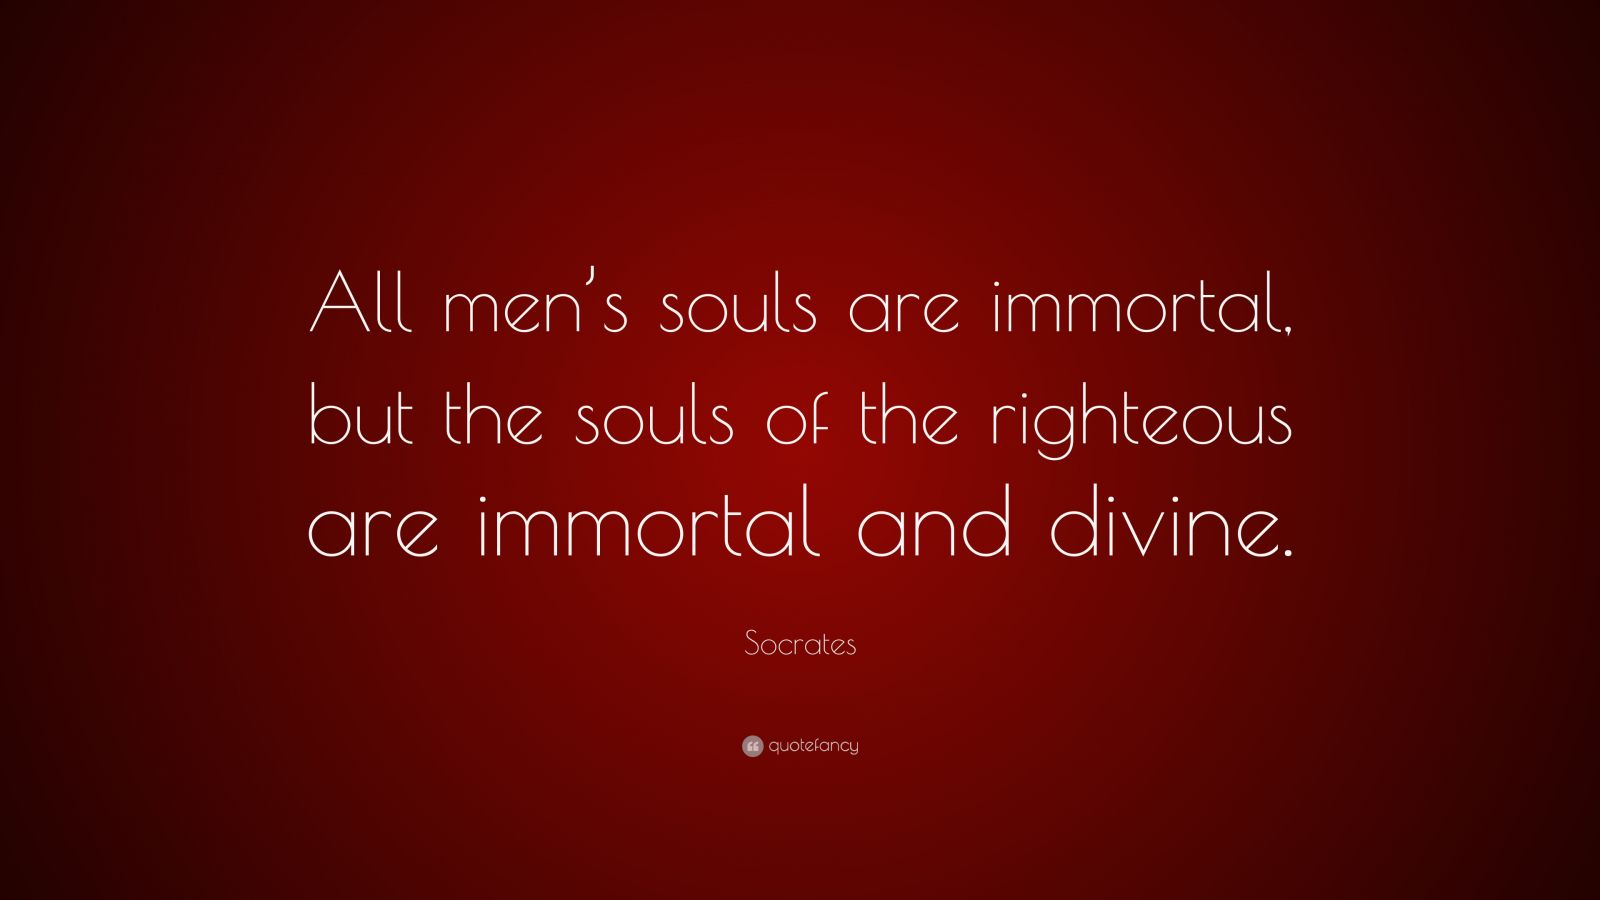 """Socrates Quote: """"All men's souls are immortal, but the souls of the righteous are immortal and divine."""""""